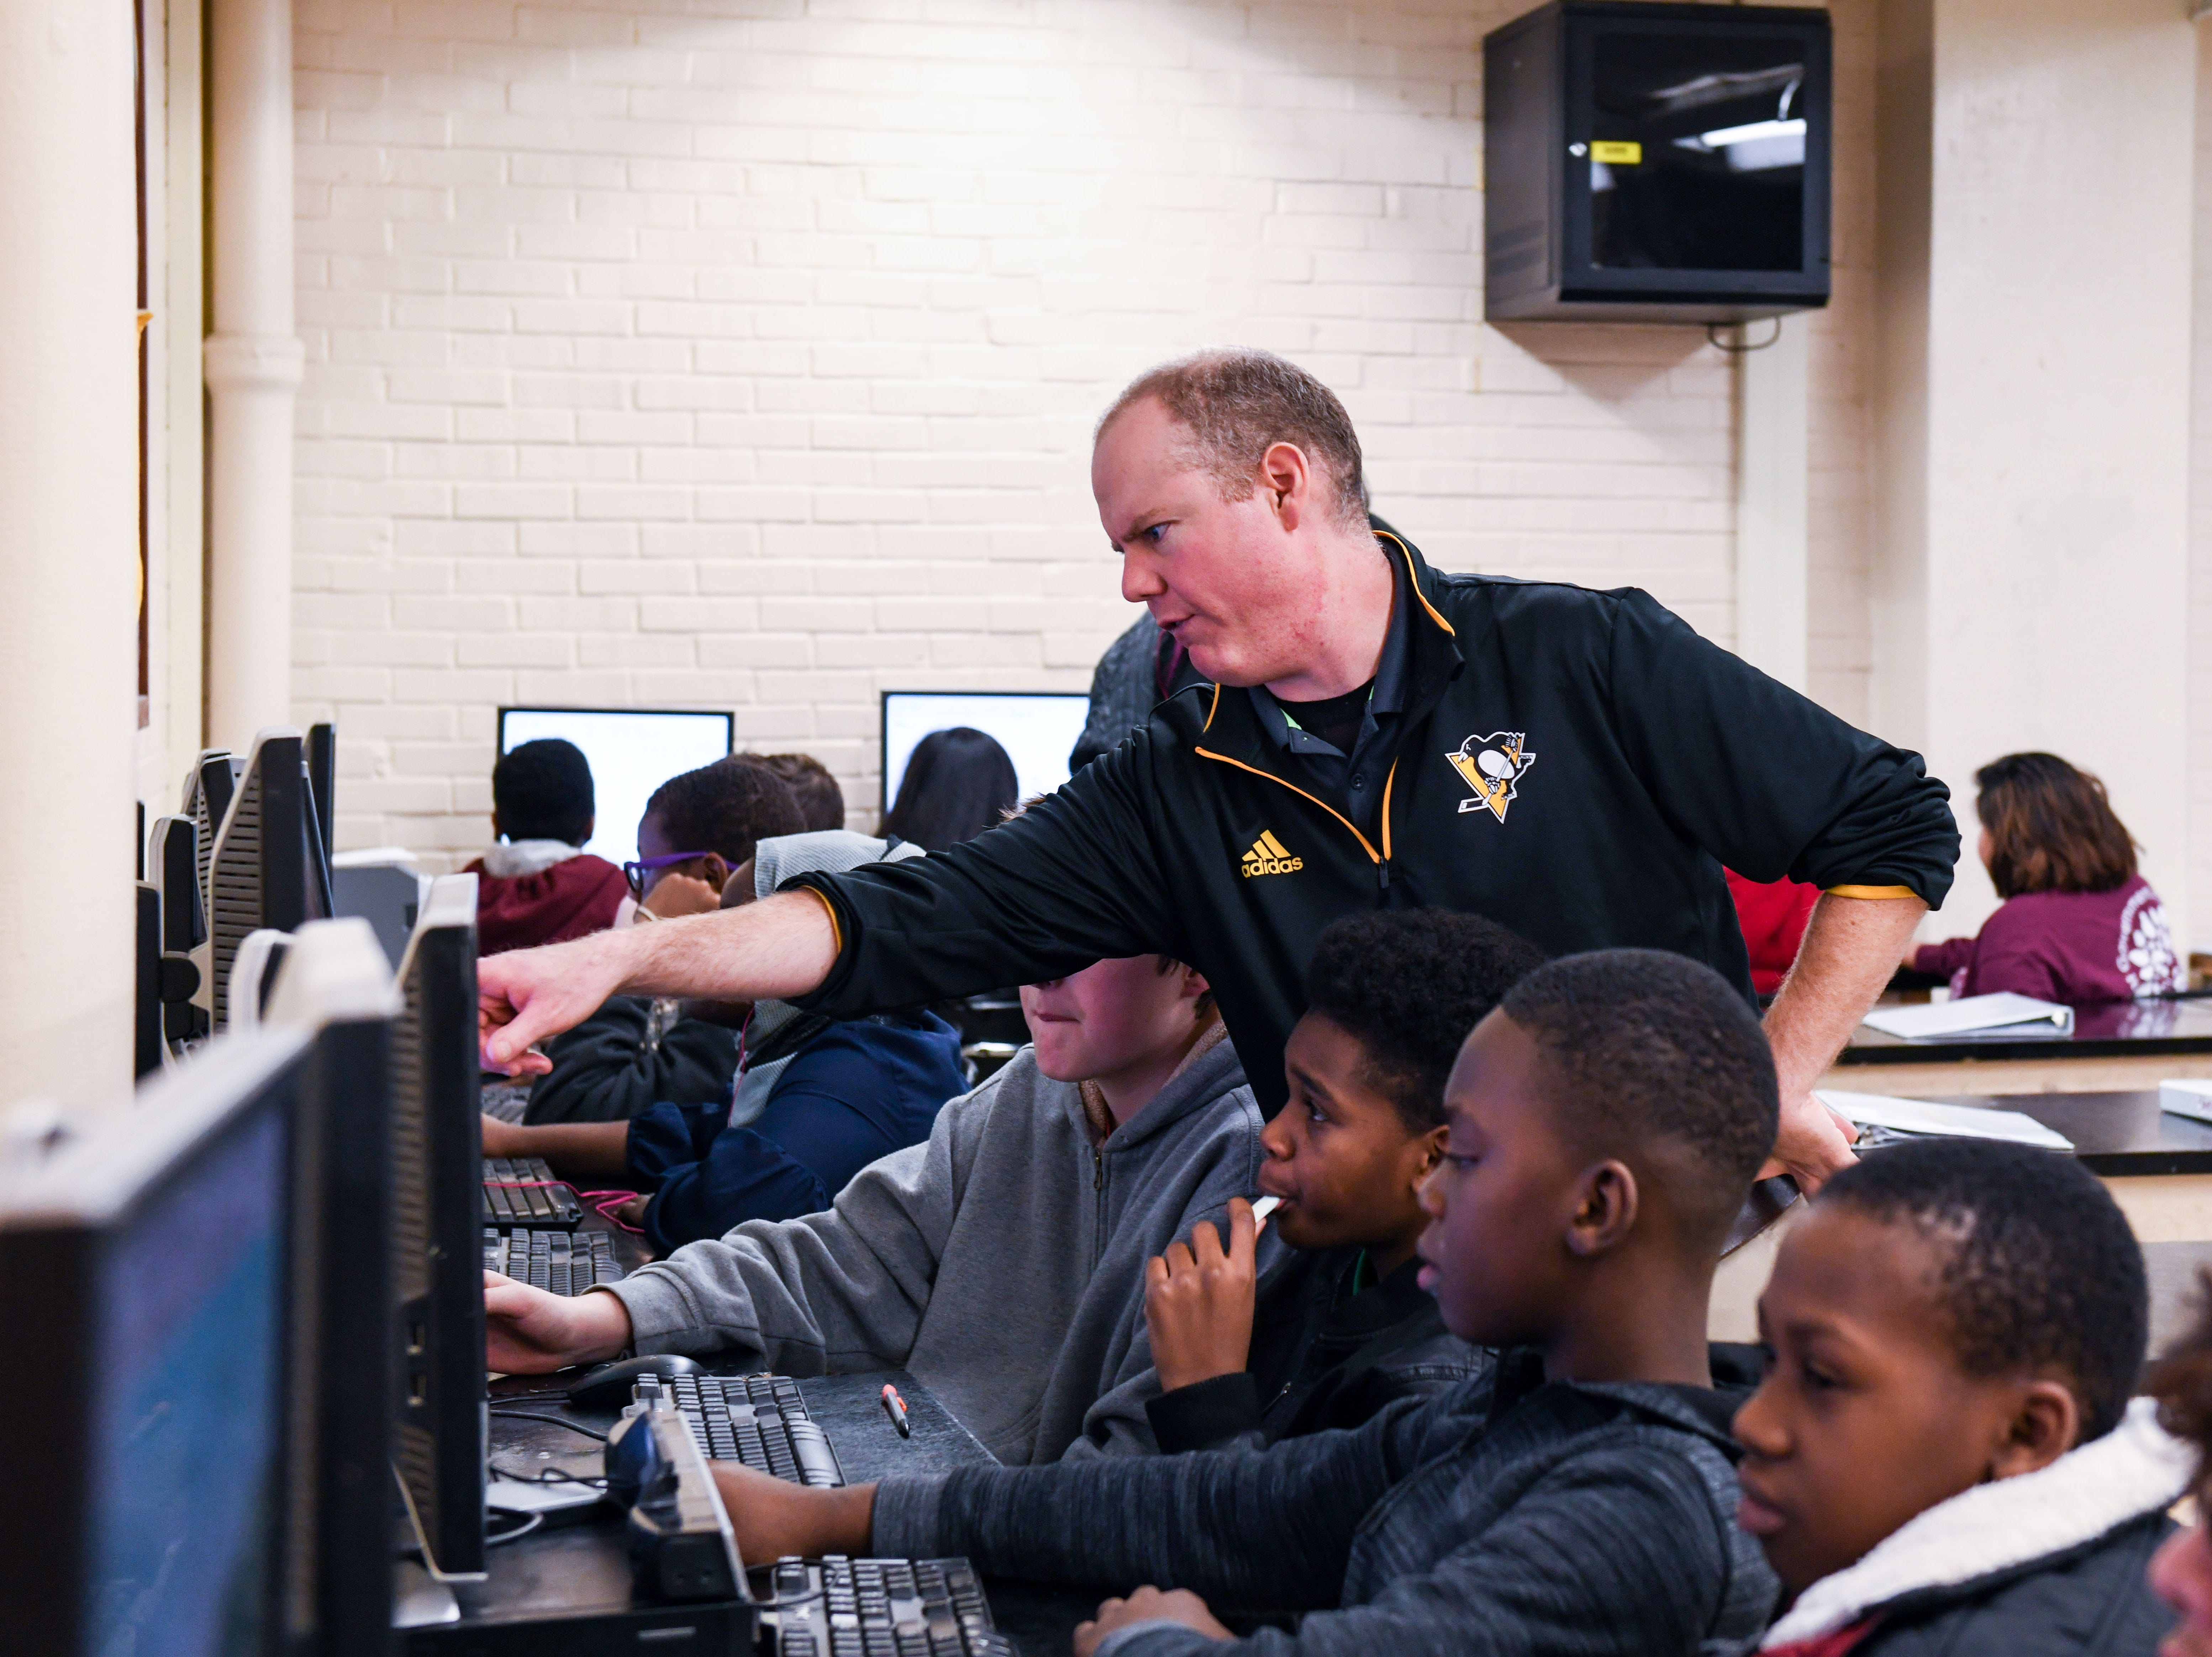 Wicomico Middle School's Jeff Lynd teaches in his classroom on Tuesday, Nov 27, 2018. Lynd donated a kidney to fellow Pittsburgh Penguins fan Kelly Sowatsky less than a month ago.